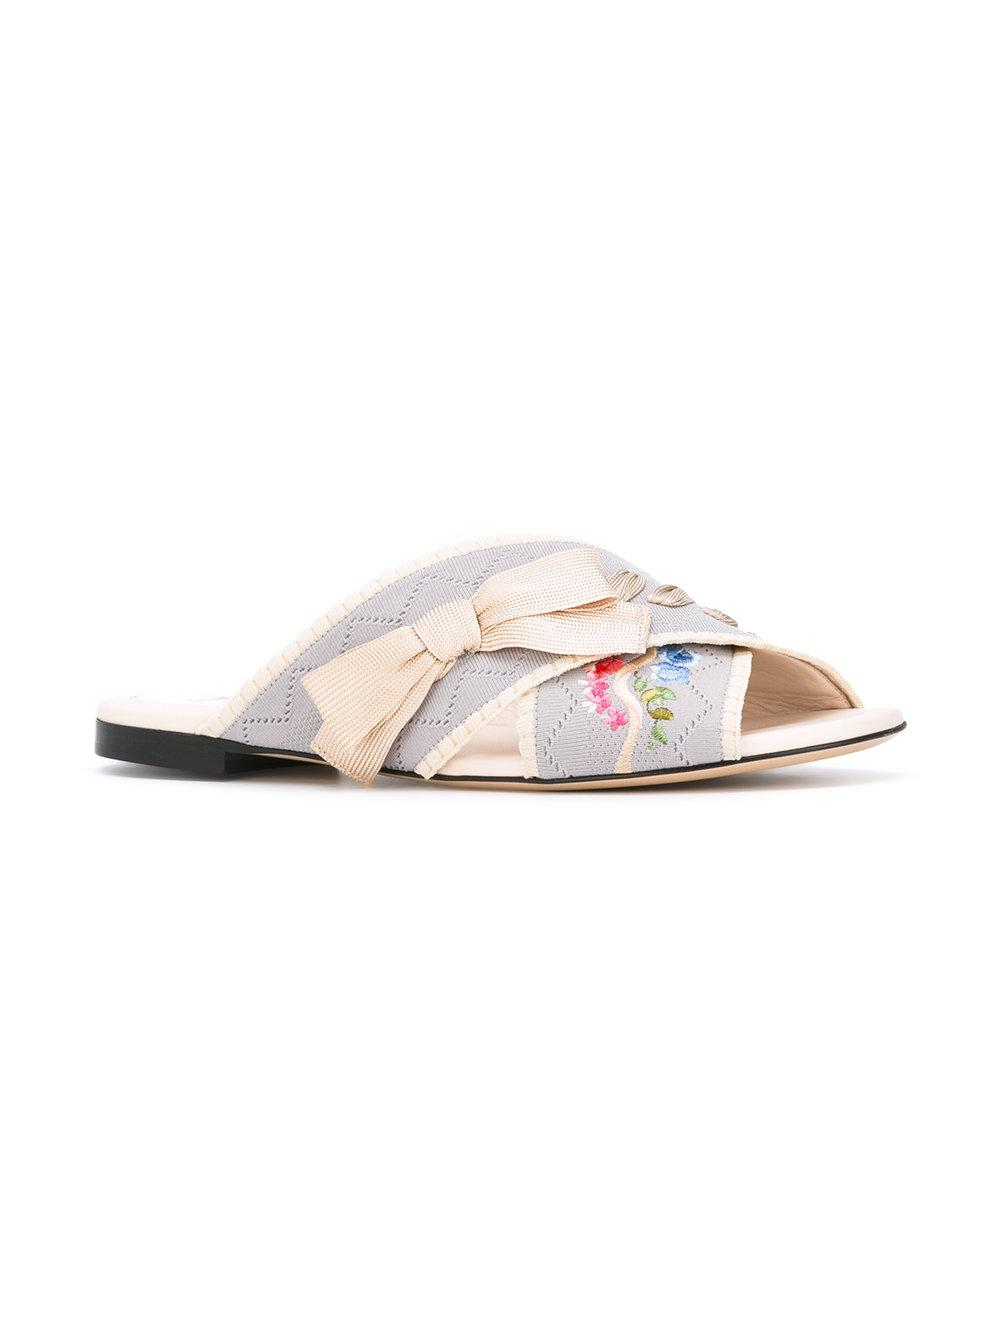 dc03fa7004ae Fendi - Pink Flat Sandals With Embroideries - Lyst. View fullscreen